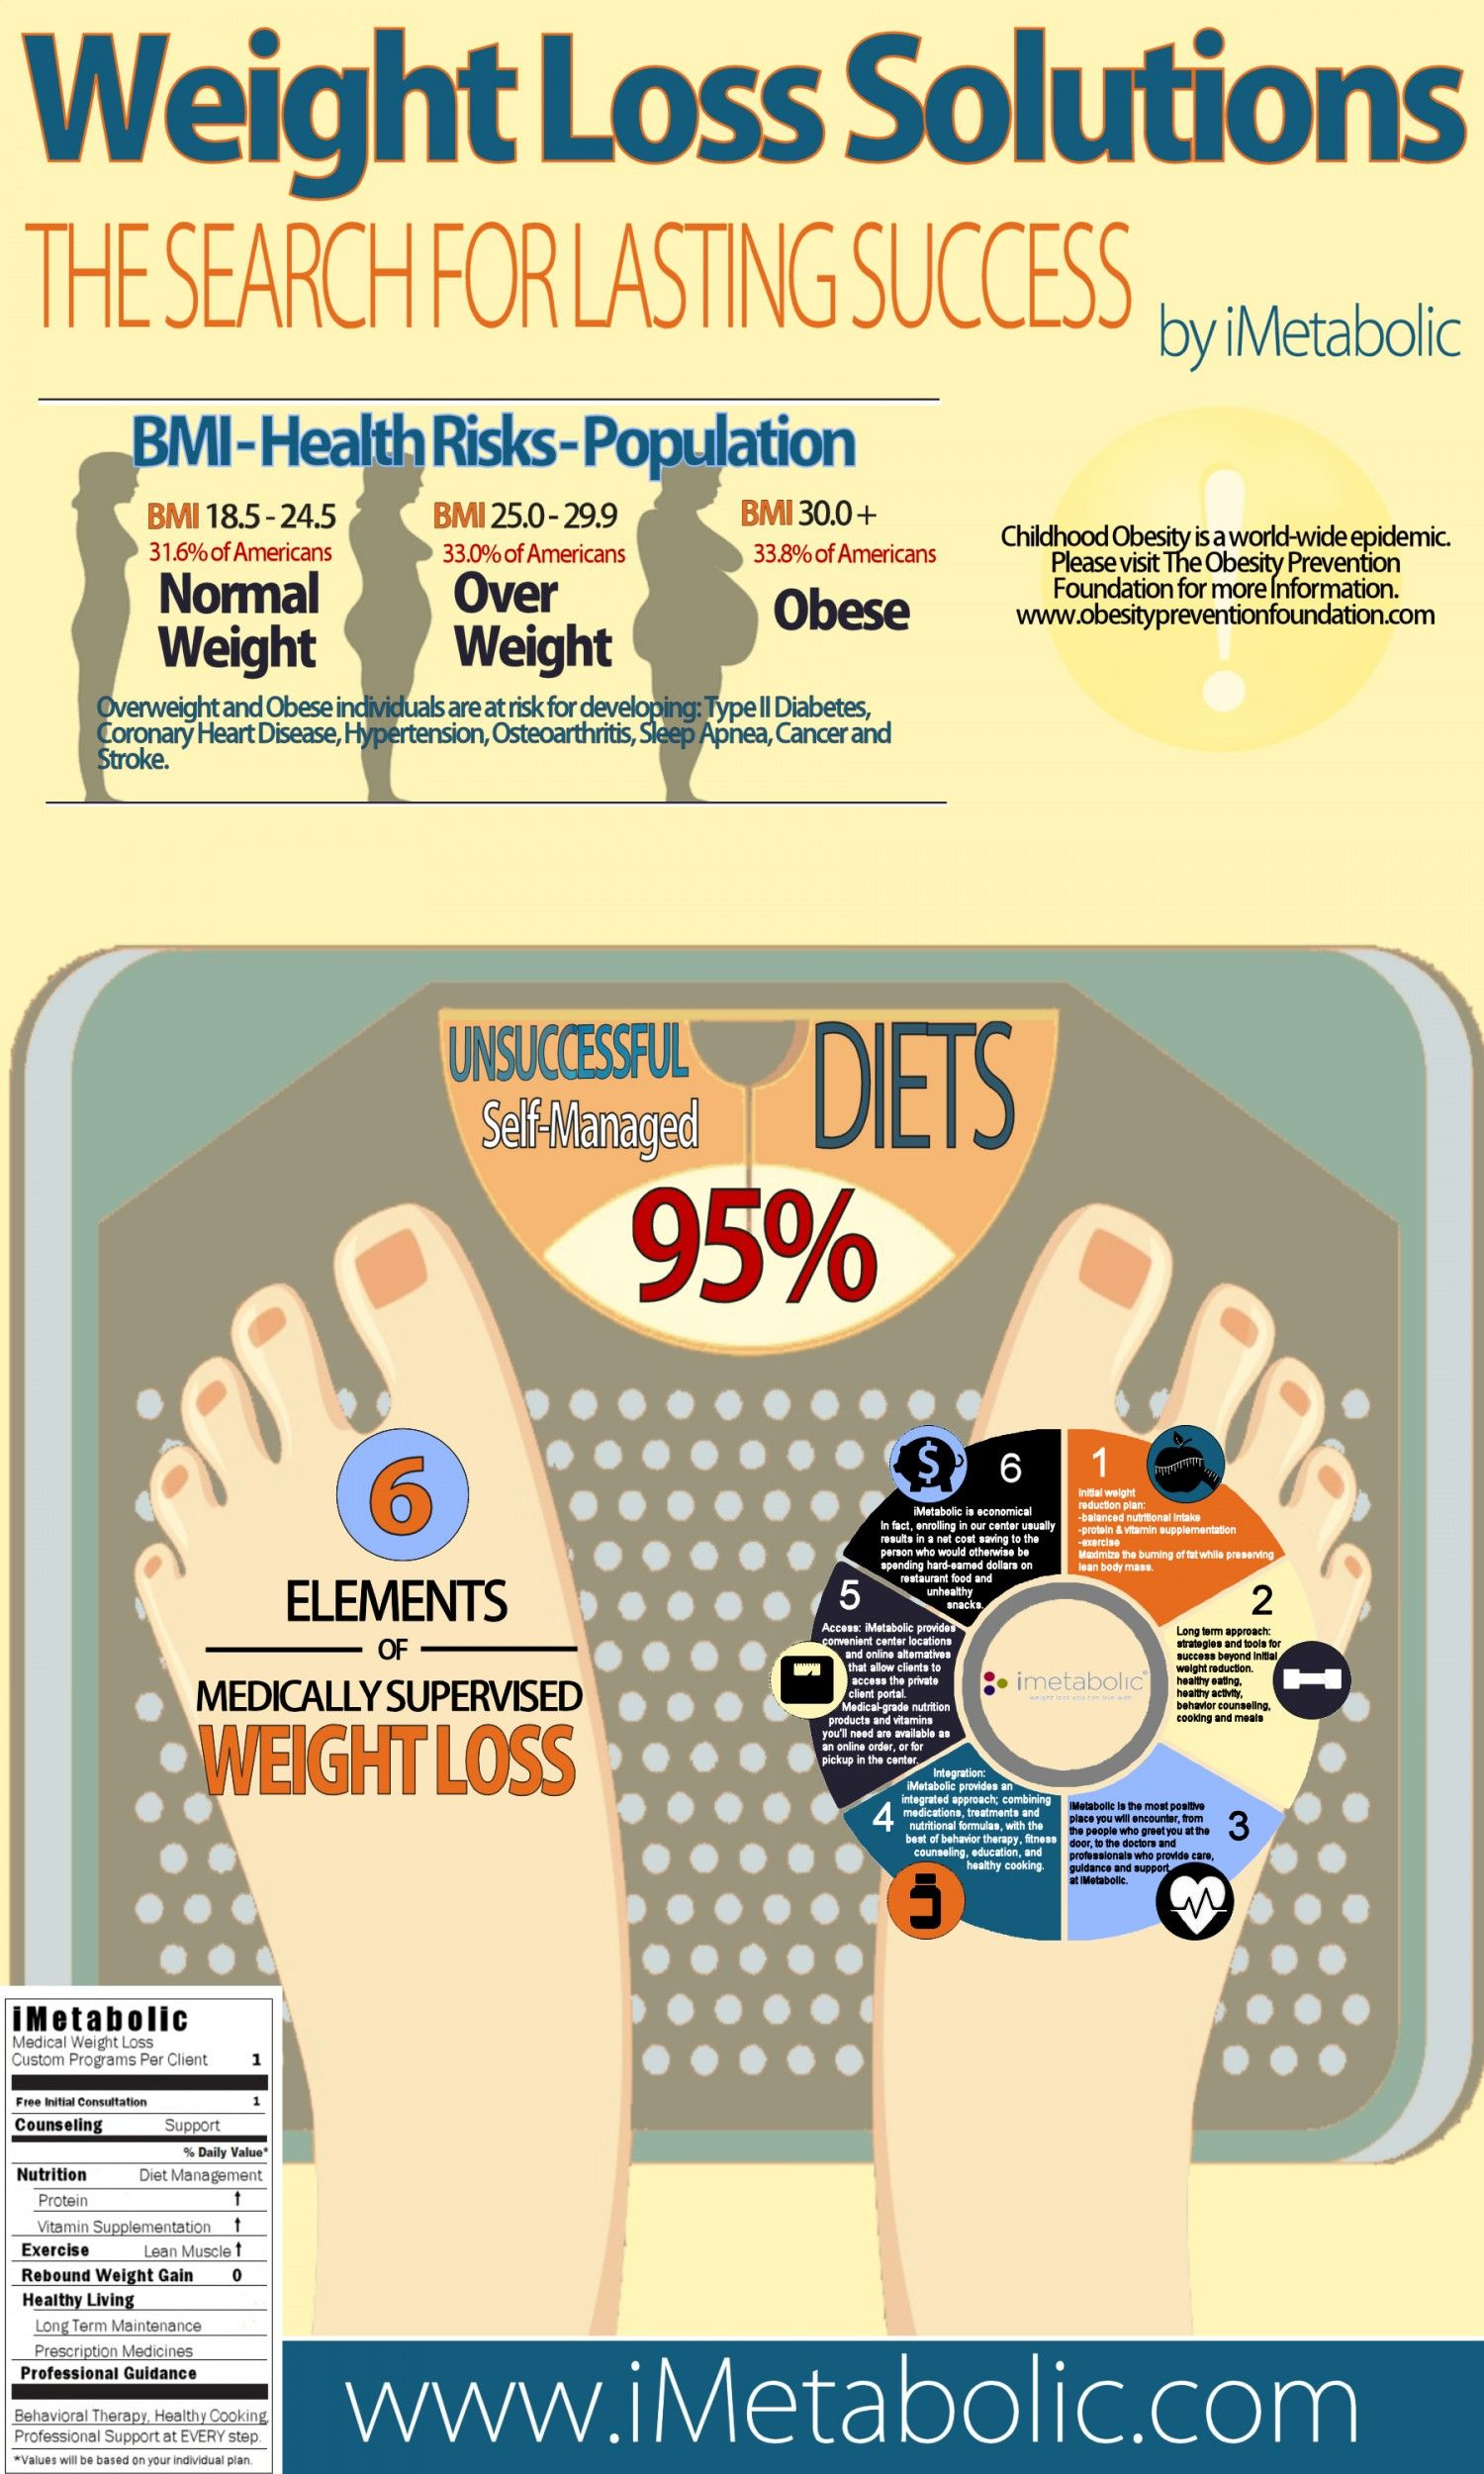 Best diet for burning fat fast image 2